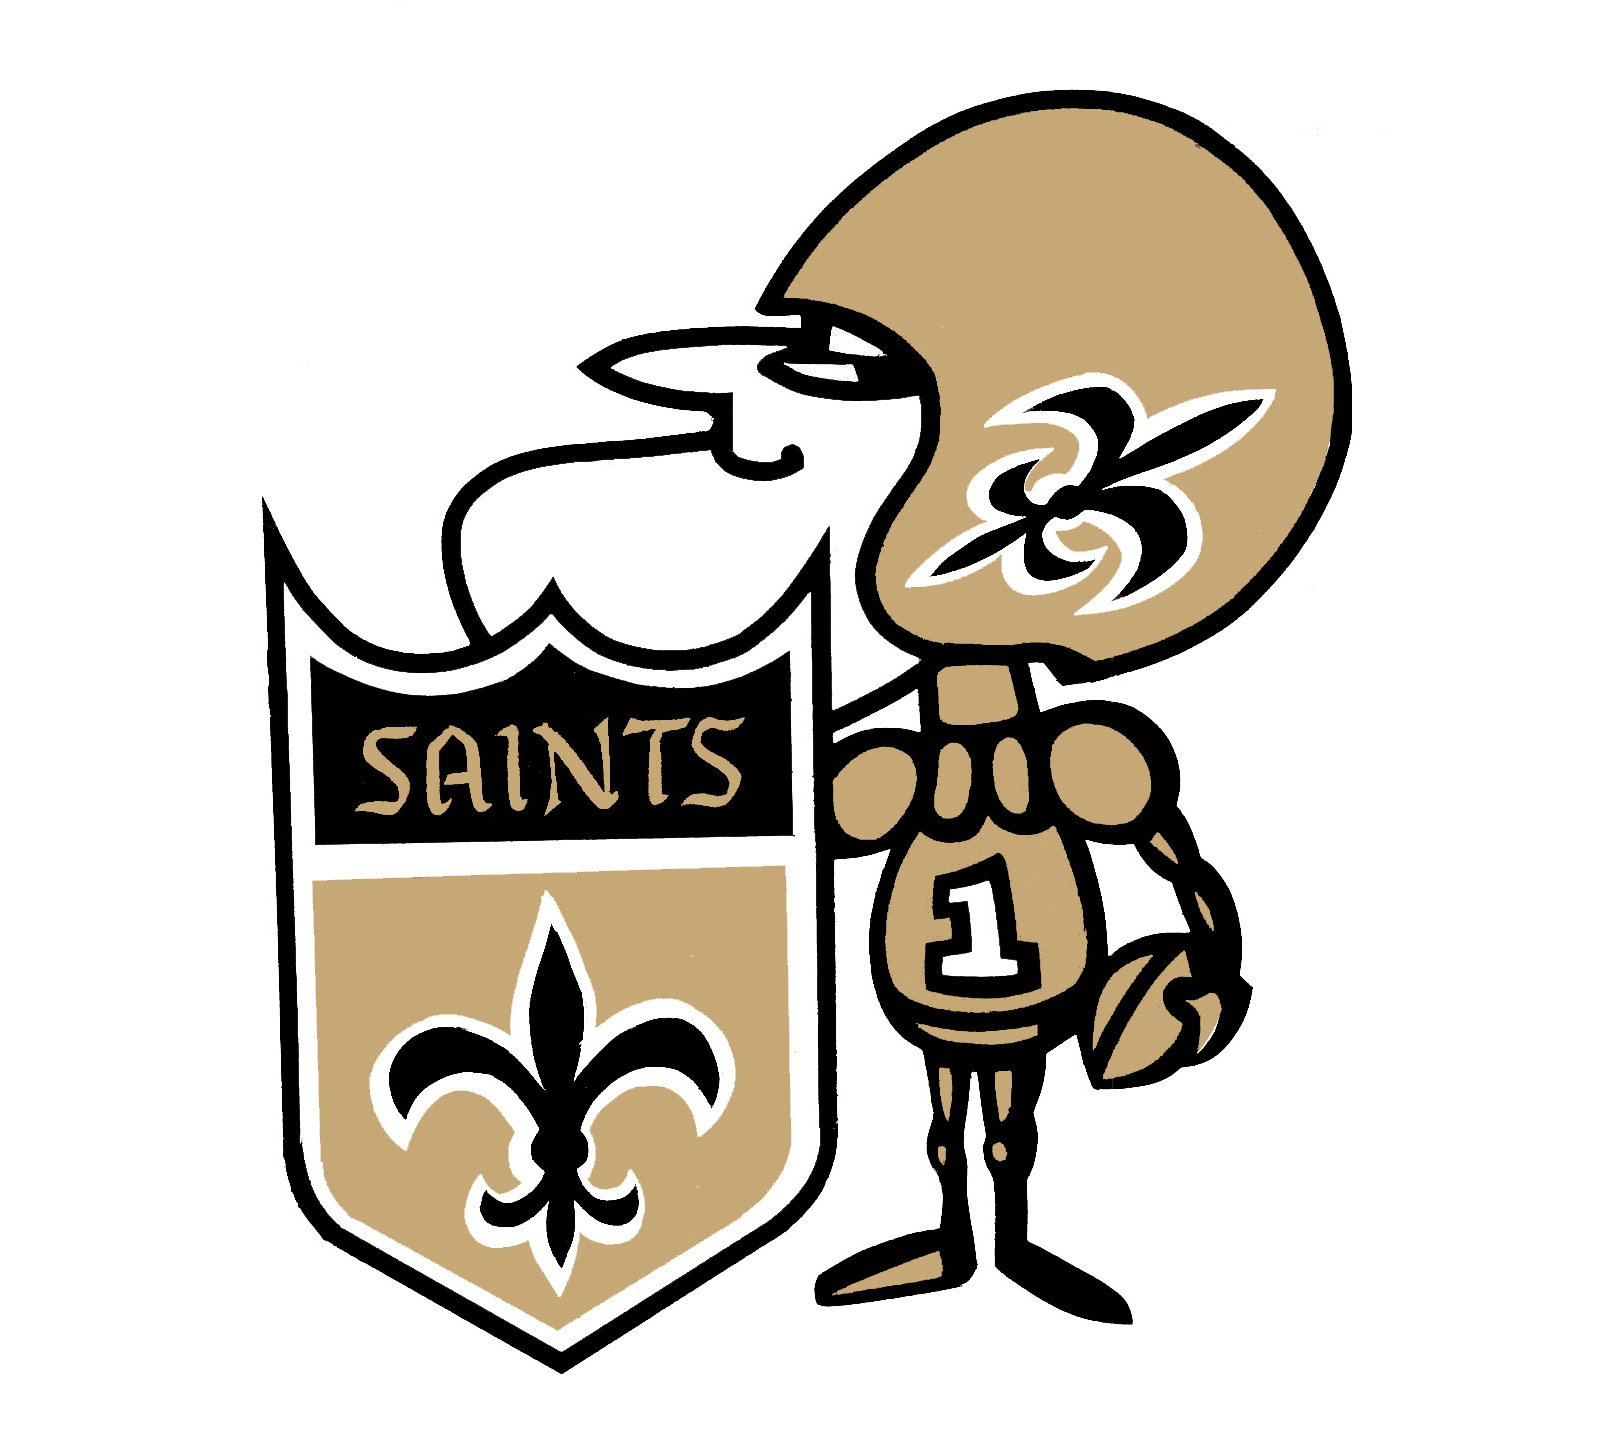 New Orleans Saints Logo New Orleans Saints Symbol Meaning History